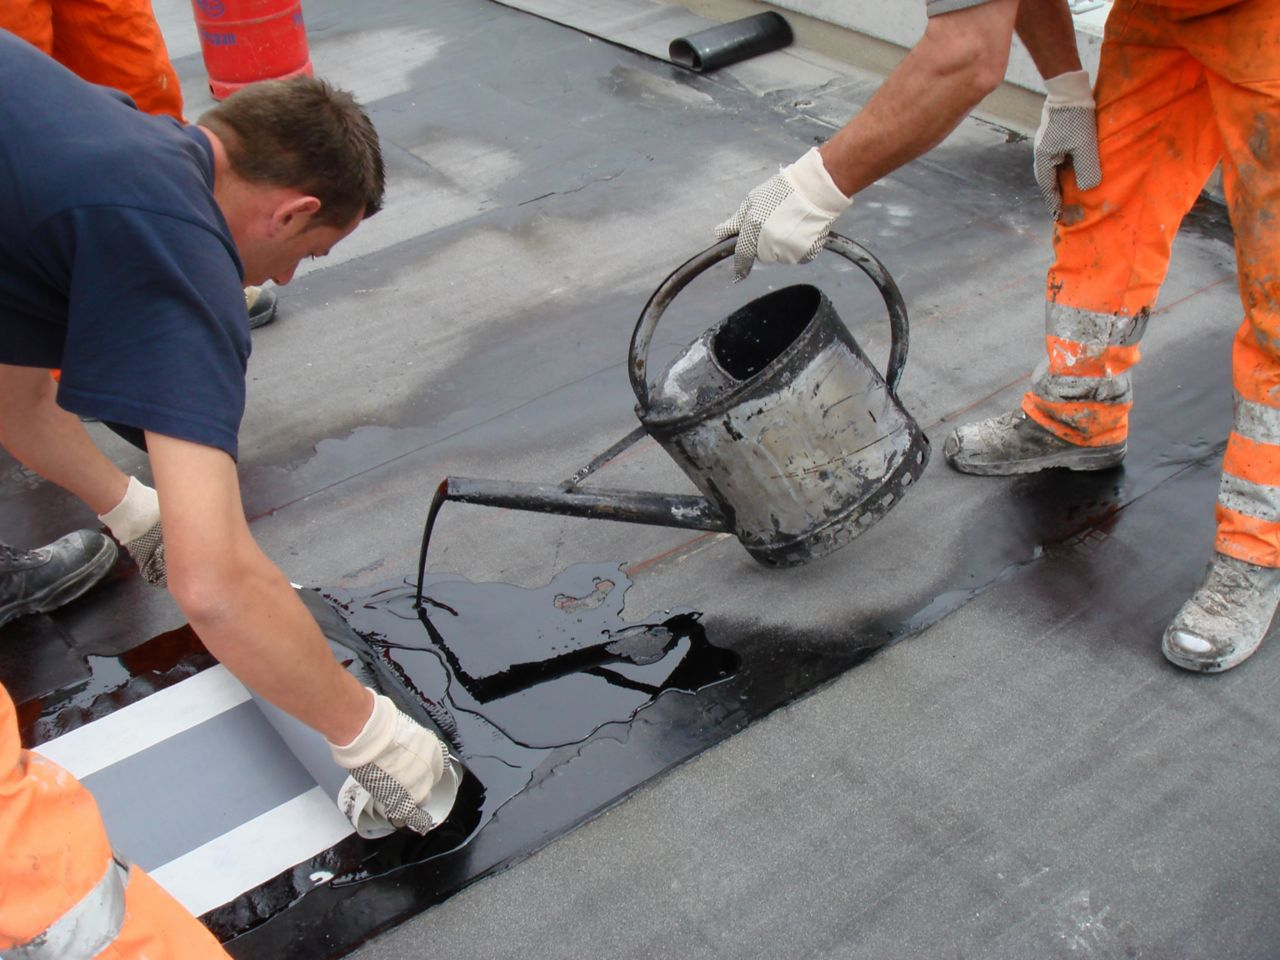 Two workers applying hot melted bitumen membrane